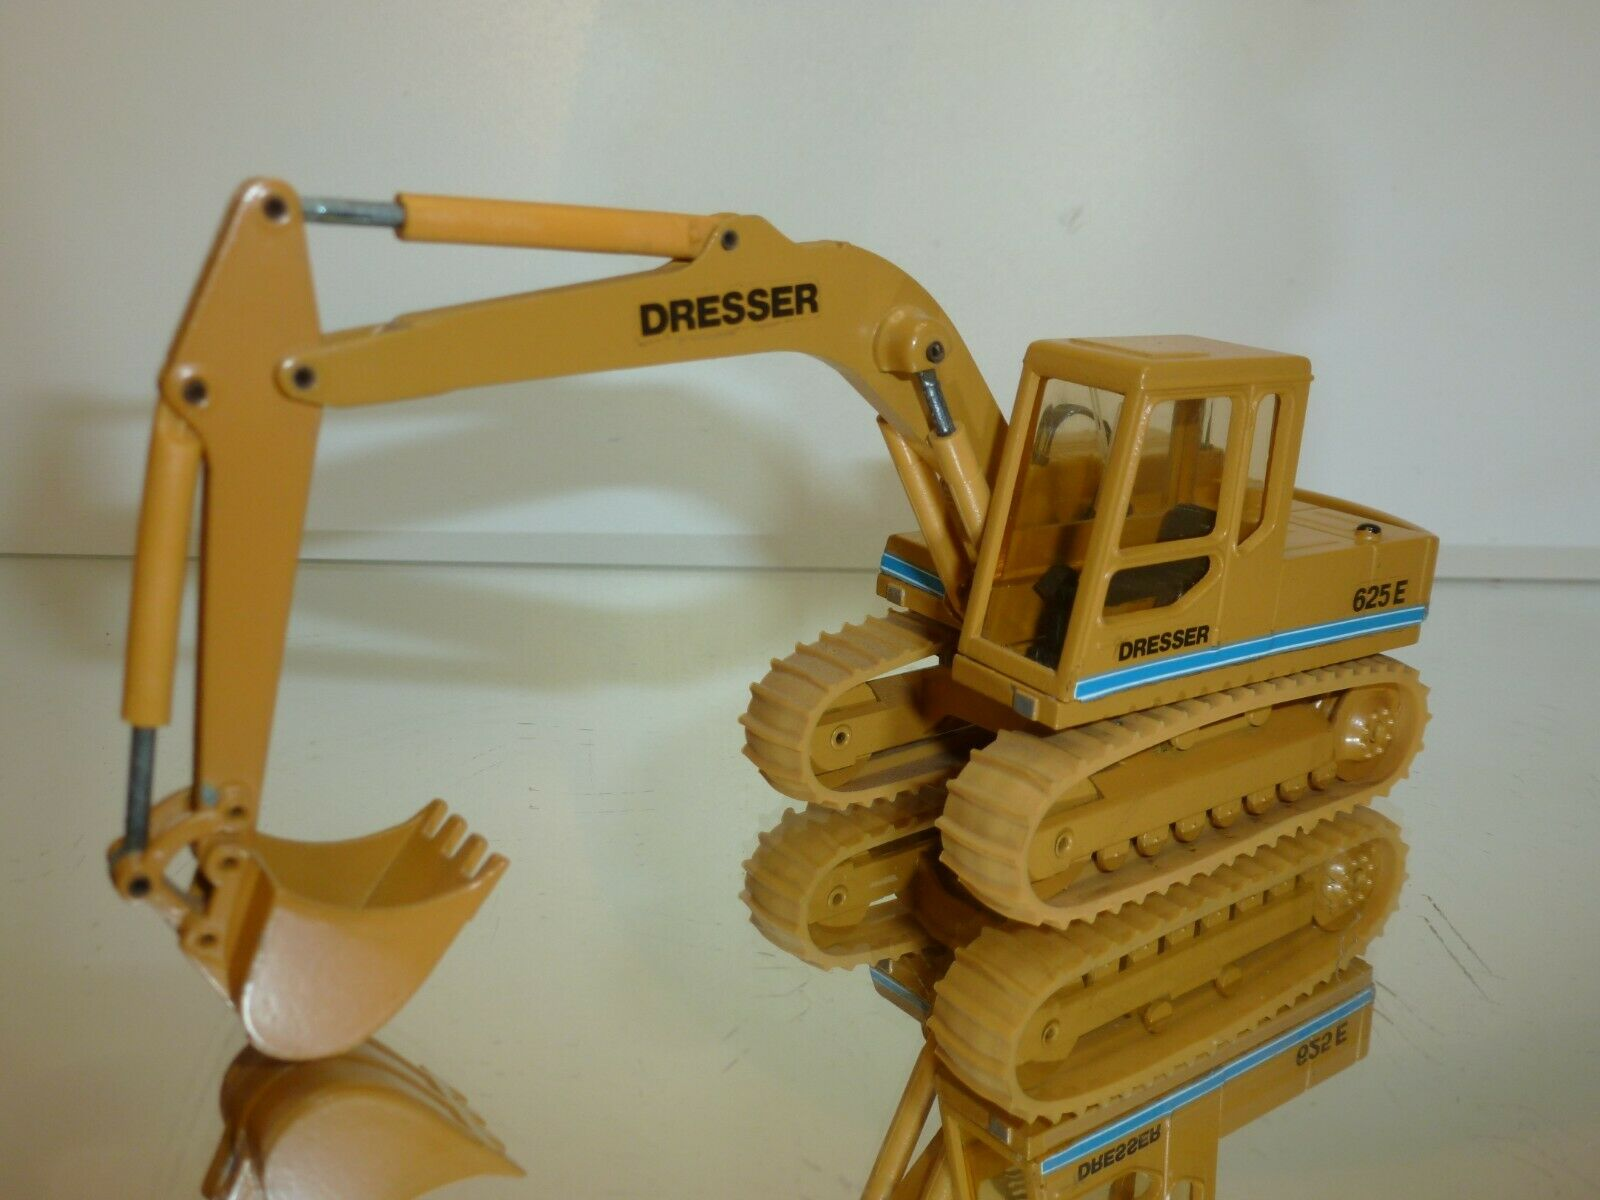 CONRAD DRESSER 625E EXCAVATOR - MUEstrellaD 1 50 - VERY GOOD CONDITION